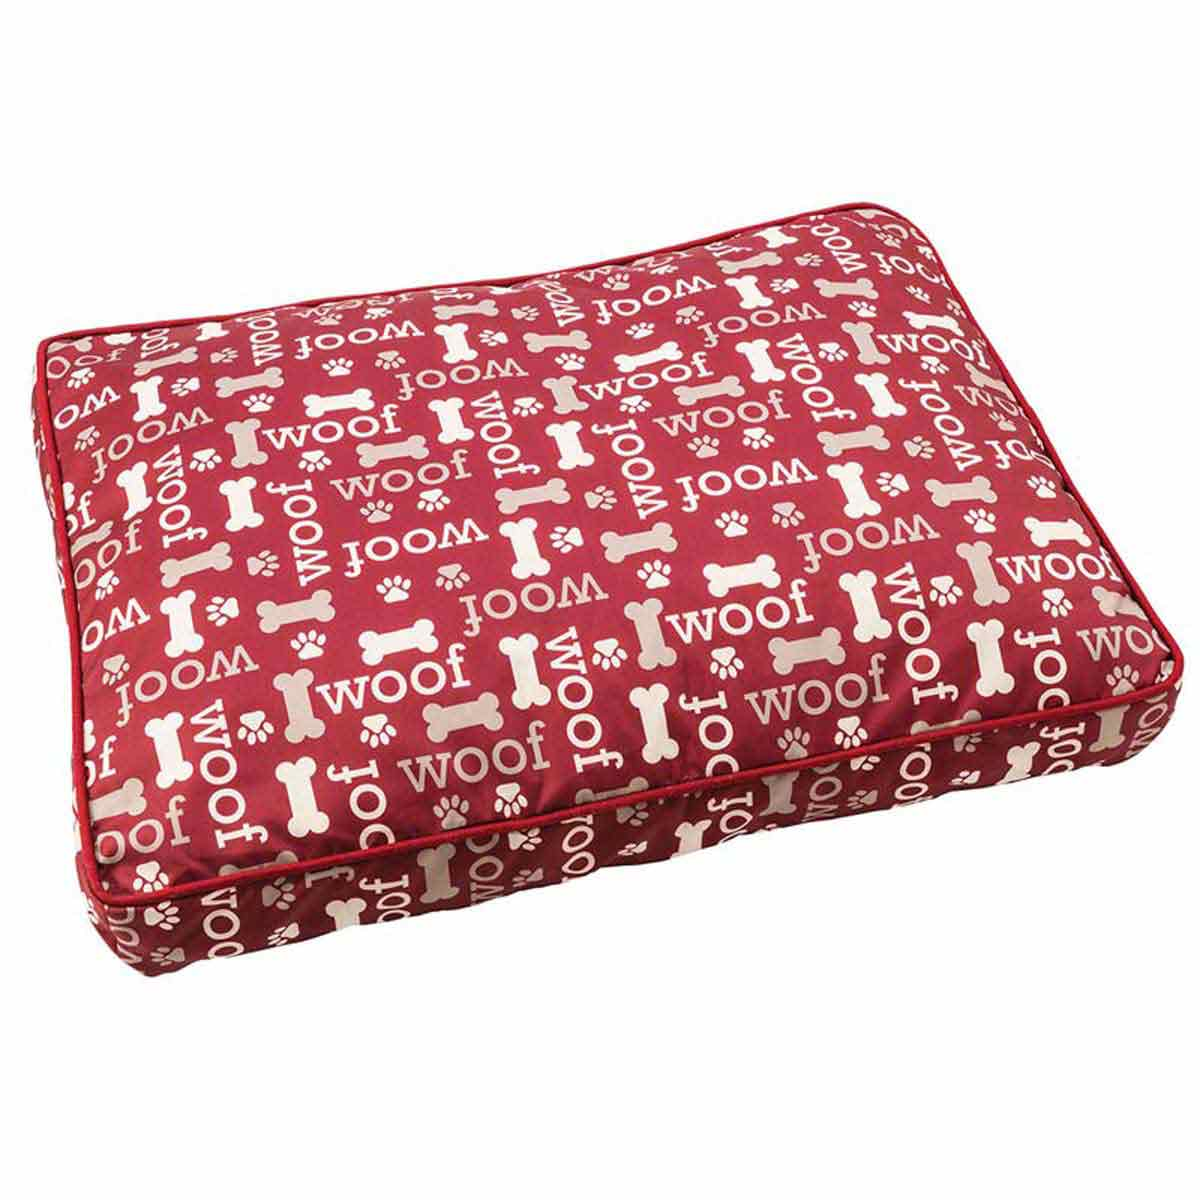 Burgundy Woof Design Sleep Zone Pillow Pet Bed - 29 inches at Ryan's Pet Supplies